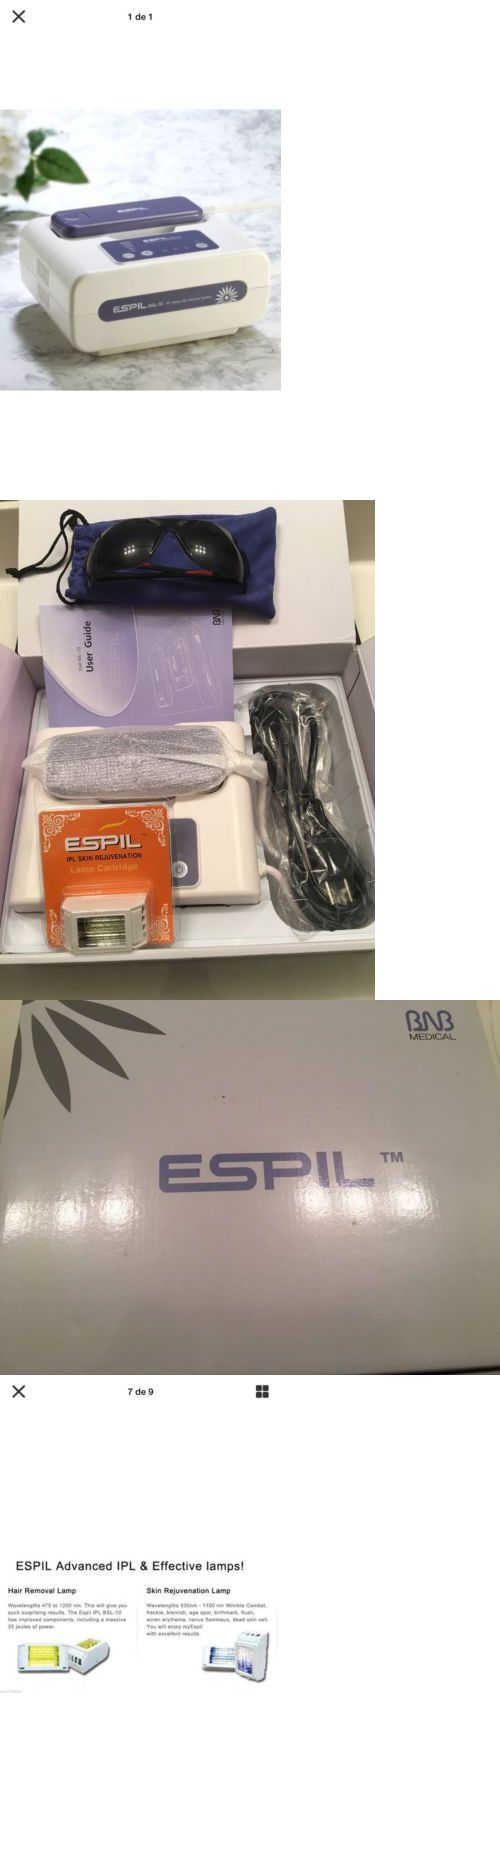 Laser Hair Removal and IPL: Espil Ipl Laser Hair Removal At Home + 1 More Skin Rejuvenation Lamp BUY IT NOW ONLY: $149.99